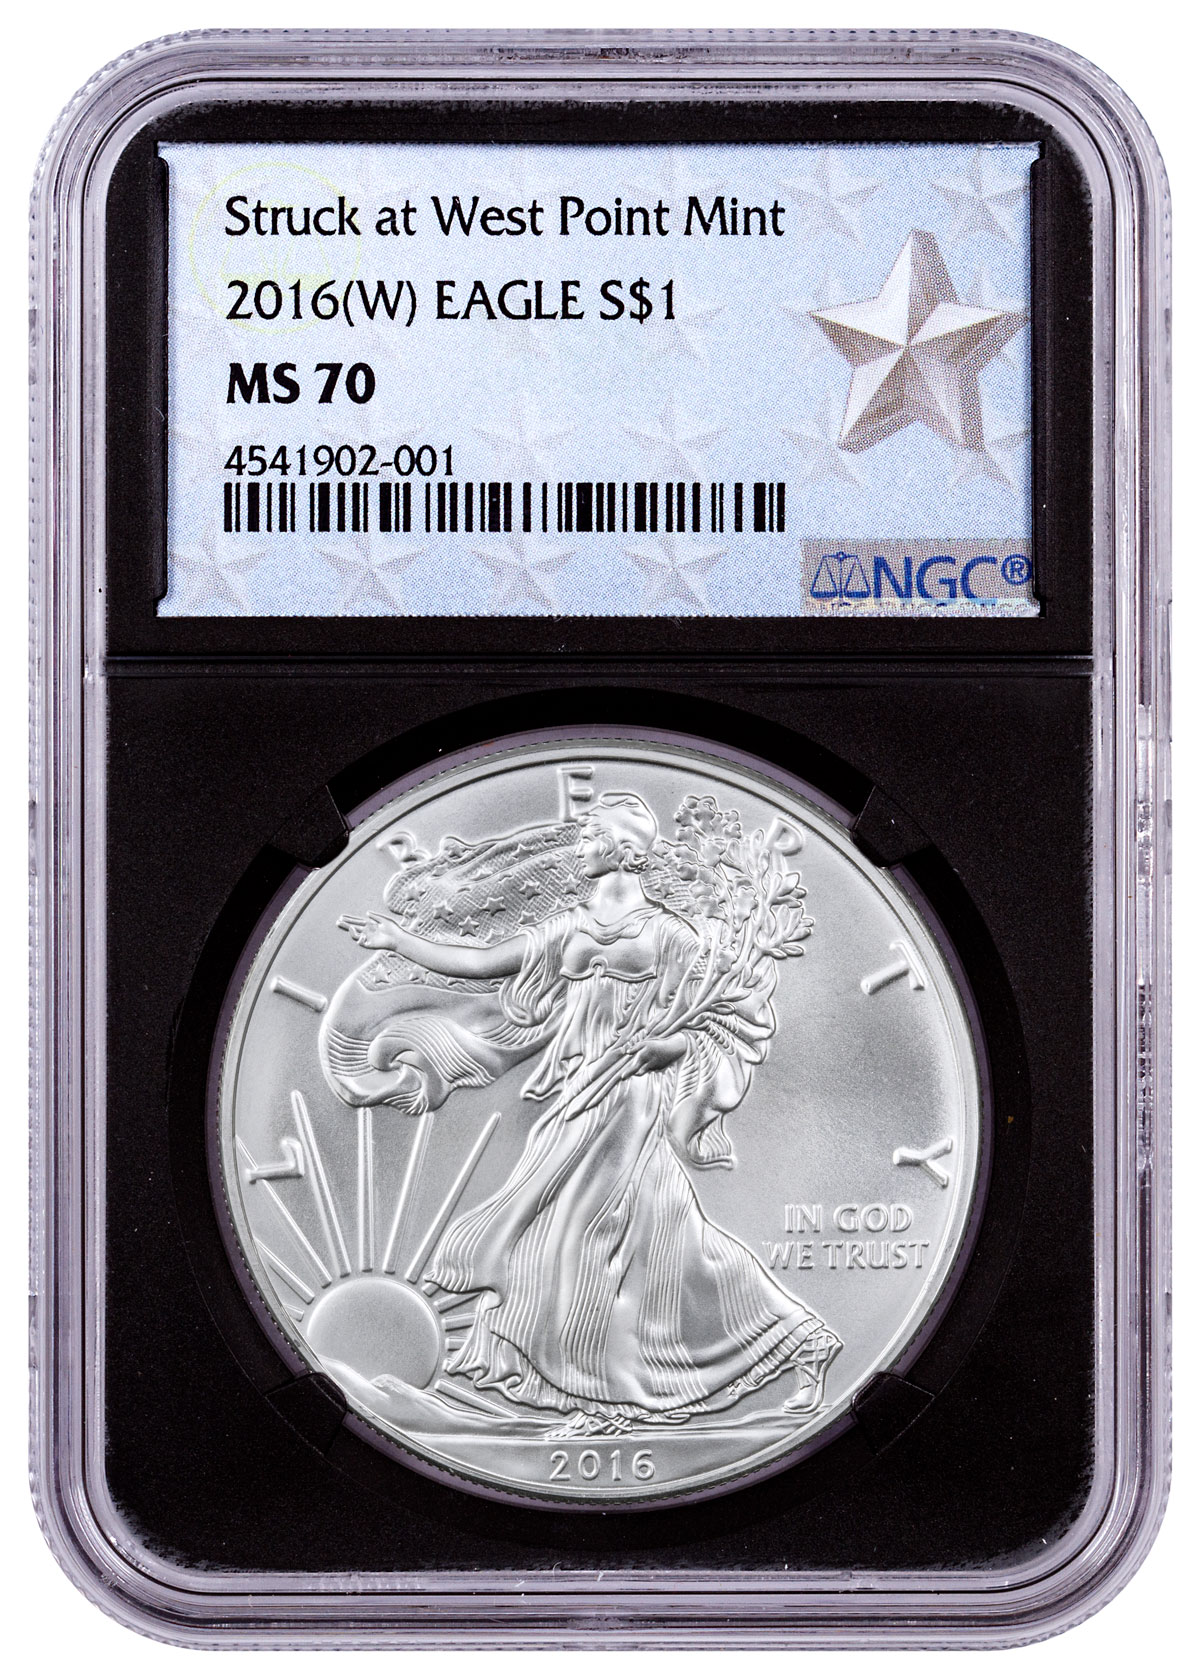 2016-(W) Silver Eagle Struck at West Point NGC MS70 (Black Core - West Point Silver Star Label)